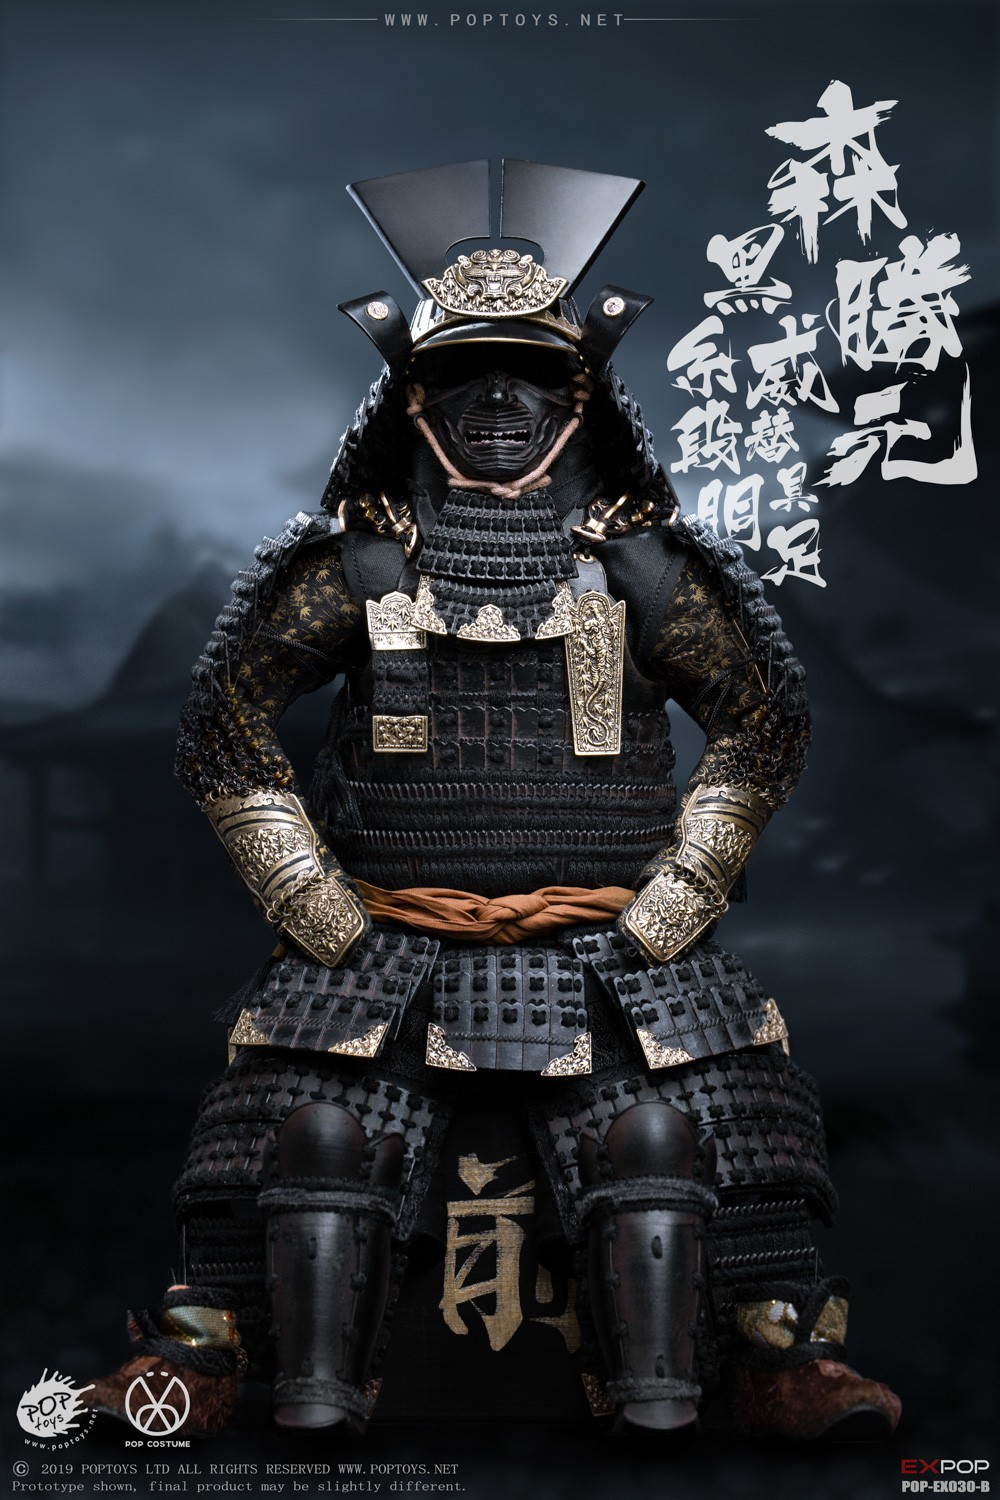 japanese - NEW PRODUCT: PopToys: 1/6 Benevolent Samurai EX30 Standard Edition/Deluxe Edition/Petition Edition [A piece of material 100% alloy] 16334610